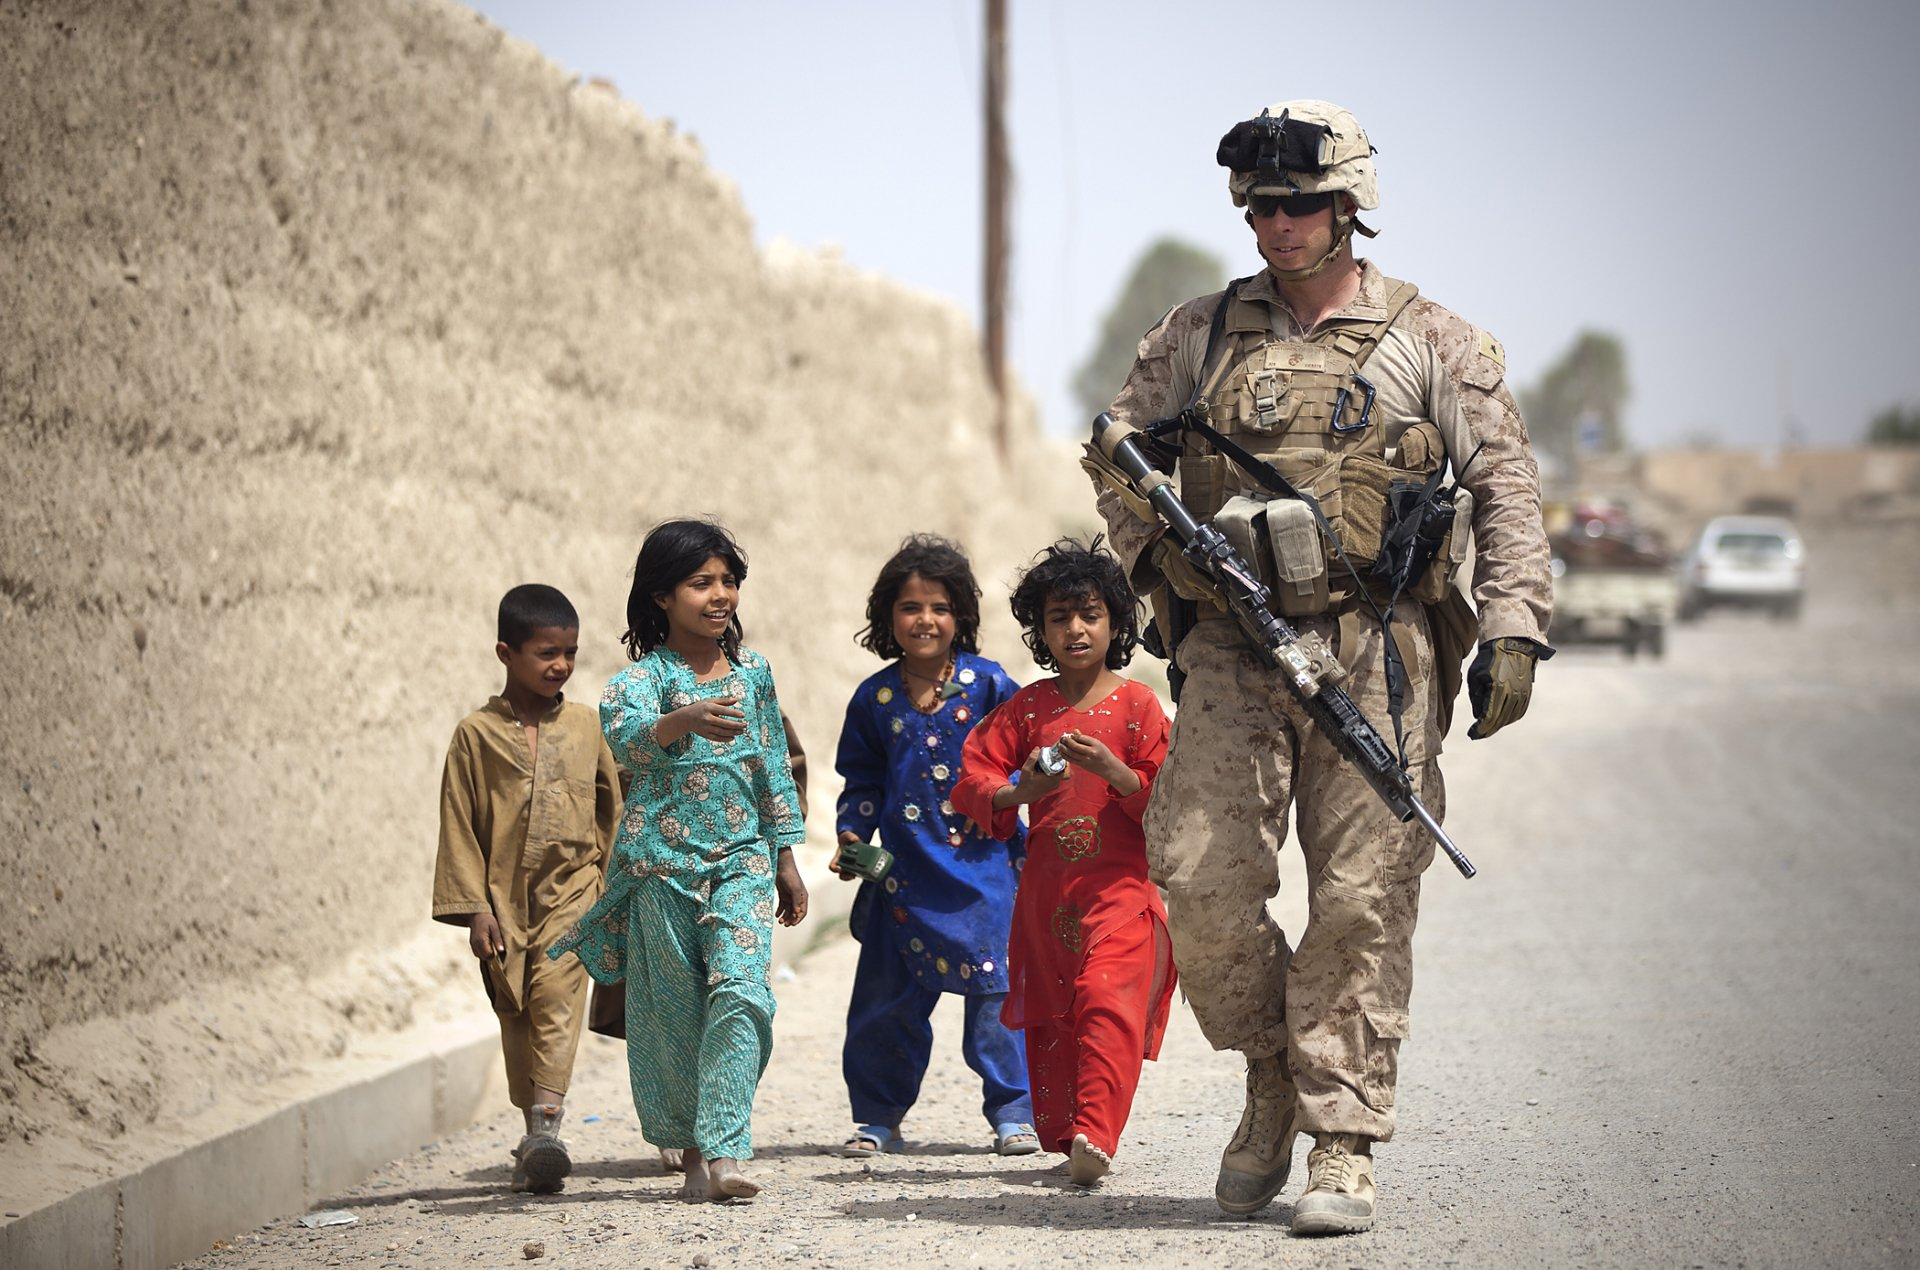 Military - Soldier  Girl Boy Afghan Military Child USMC Wallpaper